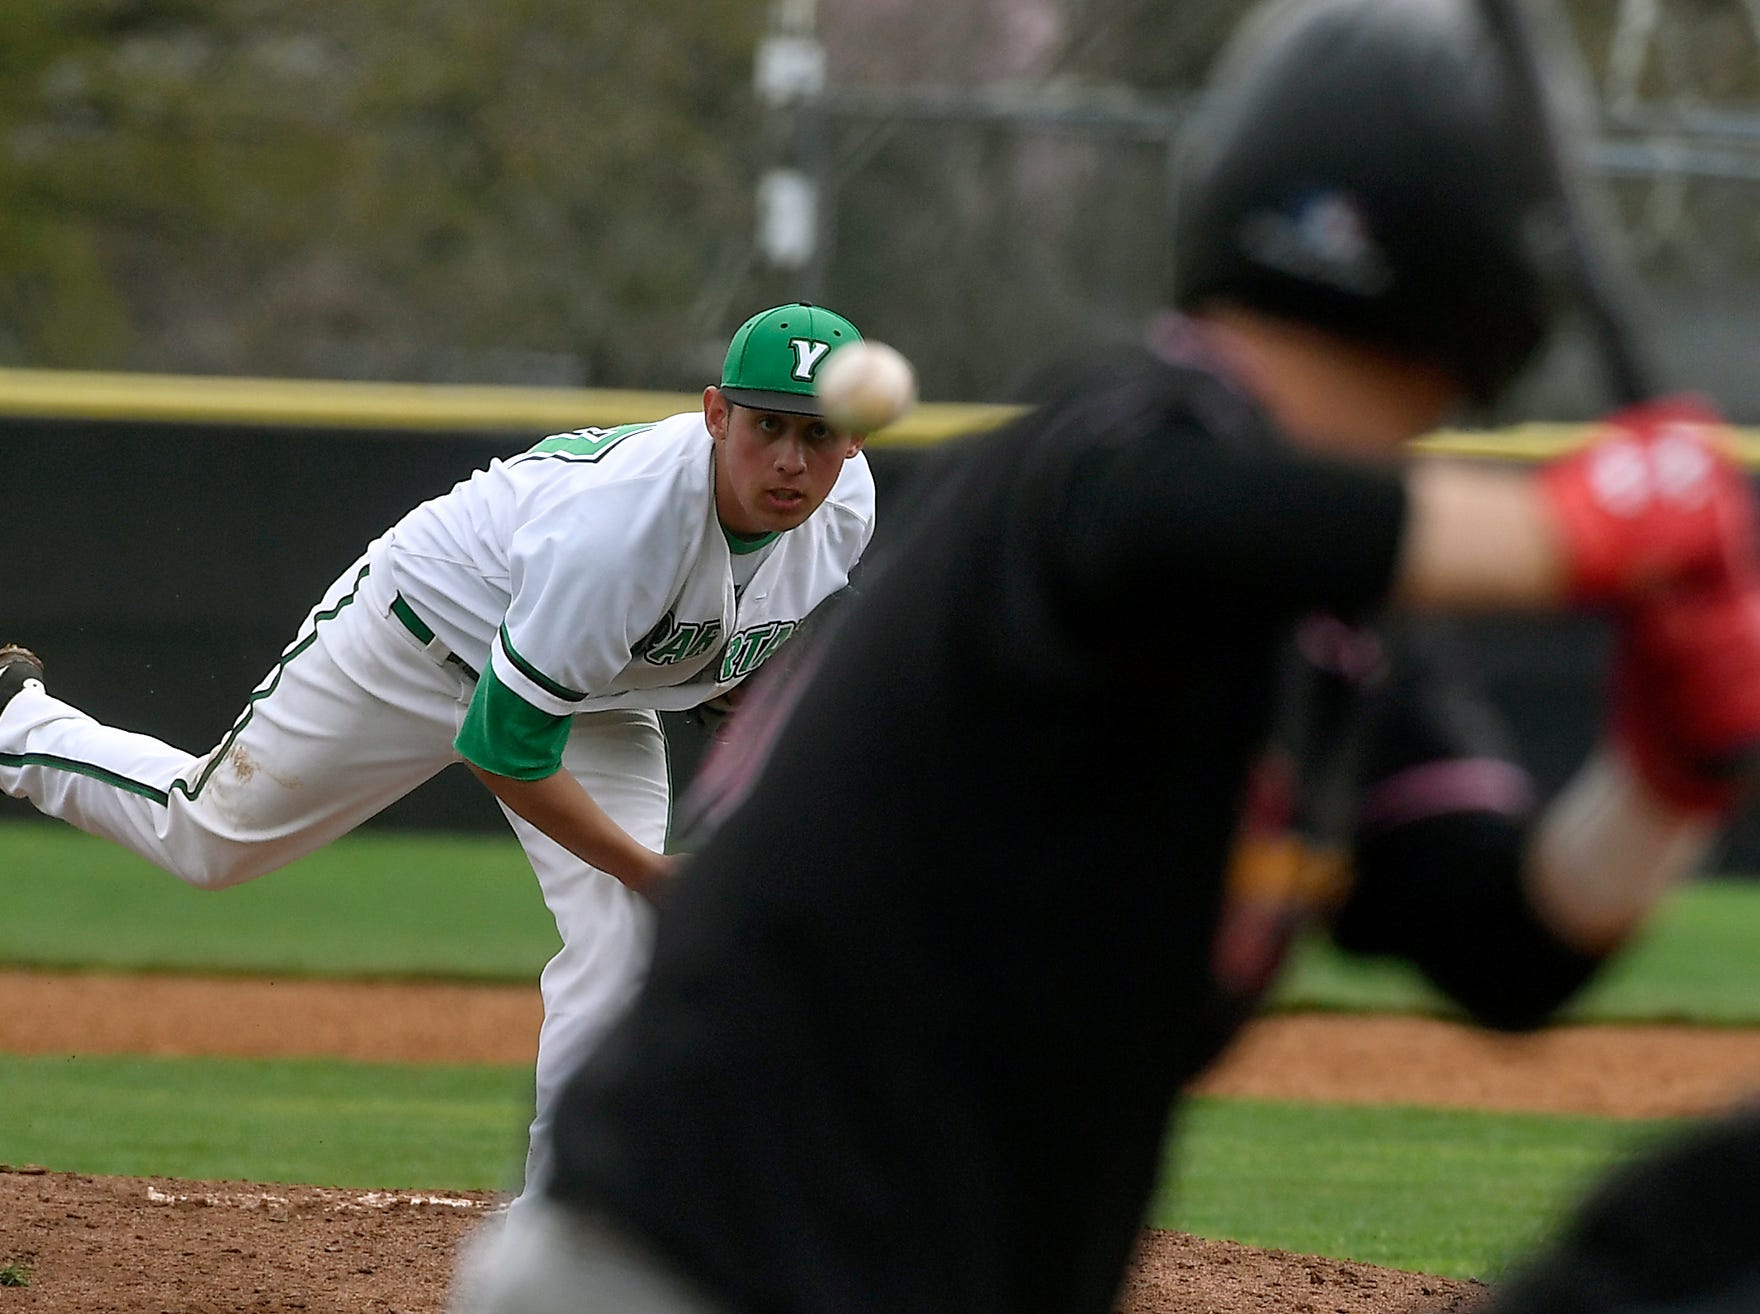 York College reliever Conor Miller, left, earned the win against Rudgers Camden pitching four scoreless innings, Sunday, April 14, 2019.John A. Pavoncello photo